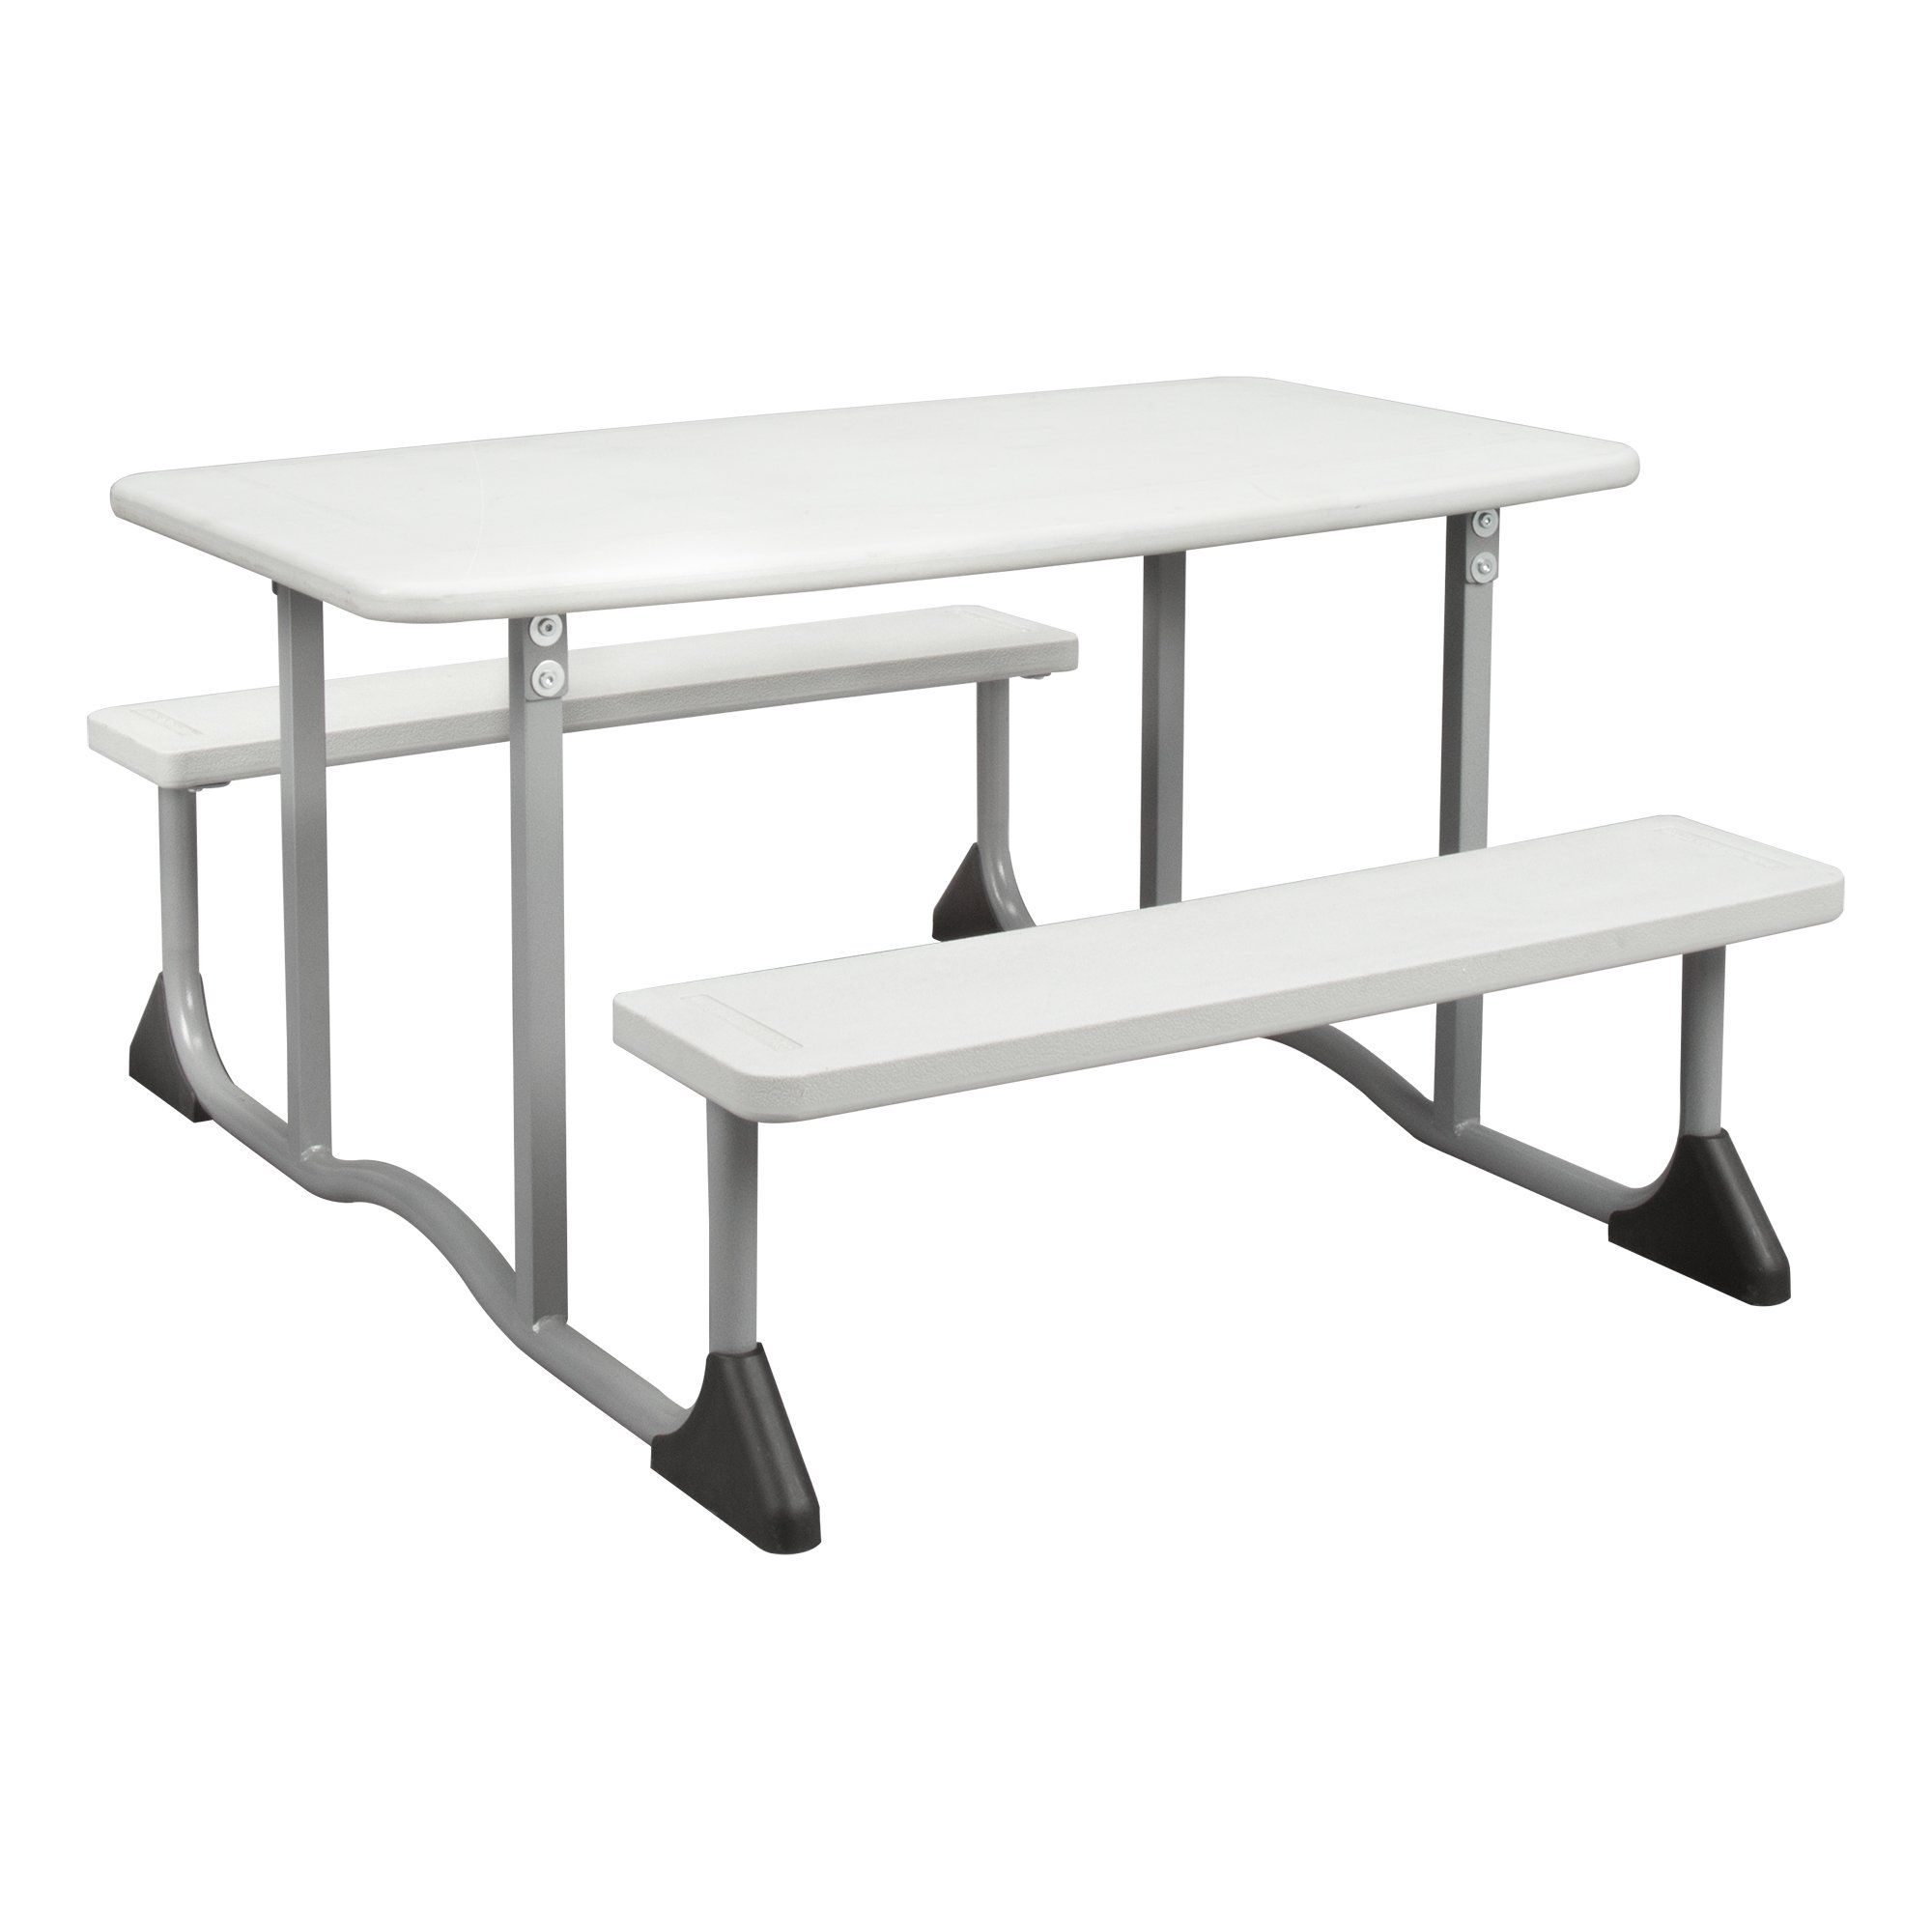 Surprising Sprogs Childrens Blow Molded Picnic Table Gray Spg Fei1054 Lamtechconsult Wood Chair Design Ideas Lamtechconsultcom